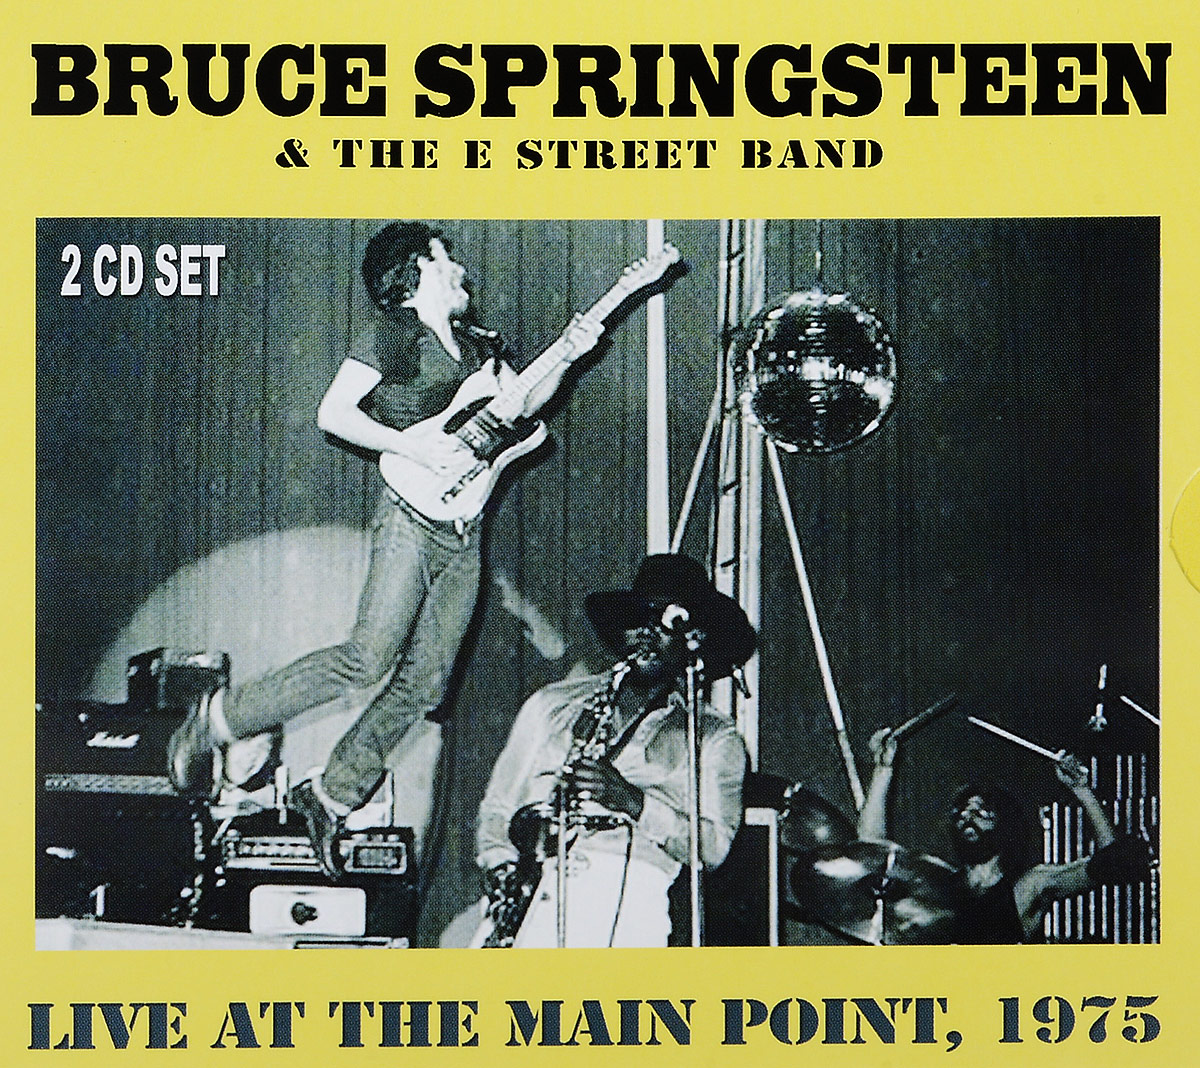 Брюс Спрингстин Bruce Springsteen. Live At The Main Point 1975 (2 CD) women sequin backpack mochila lentejuelas teenager girl school bags bling bling lady backpacks bolsa feminina sac a main femme